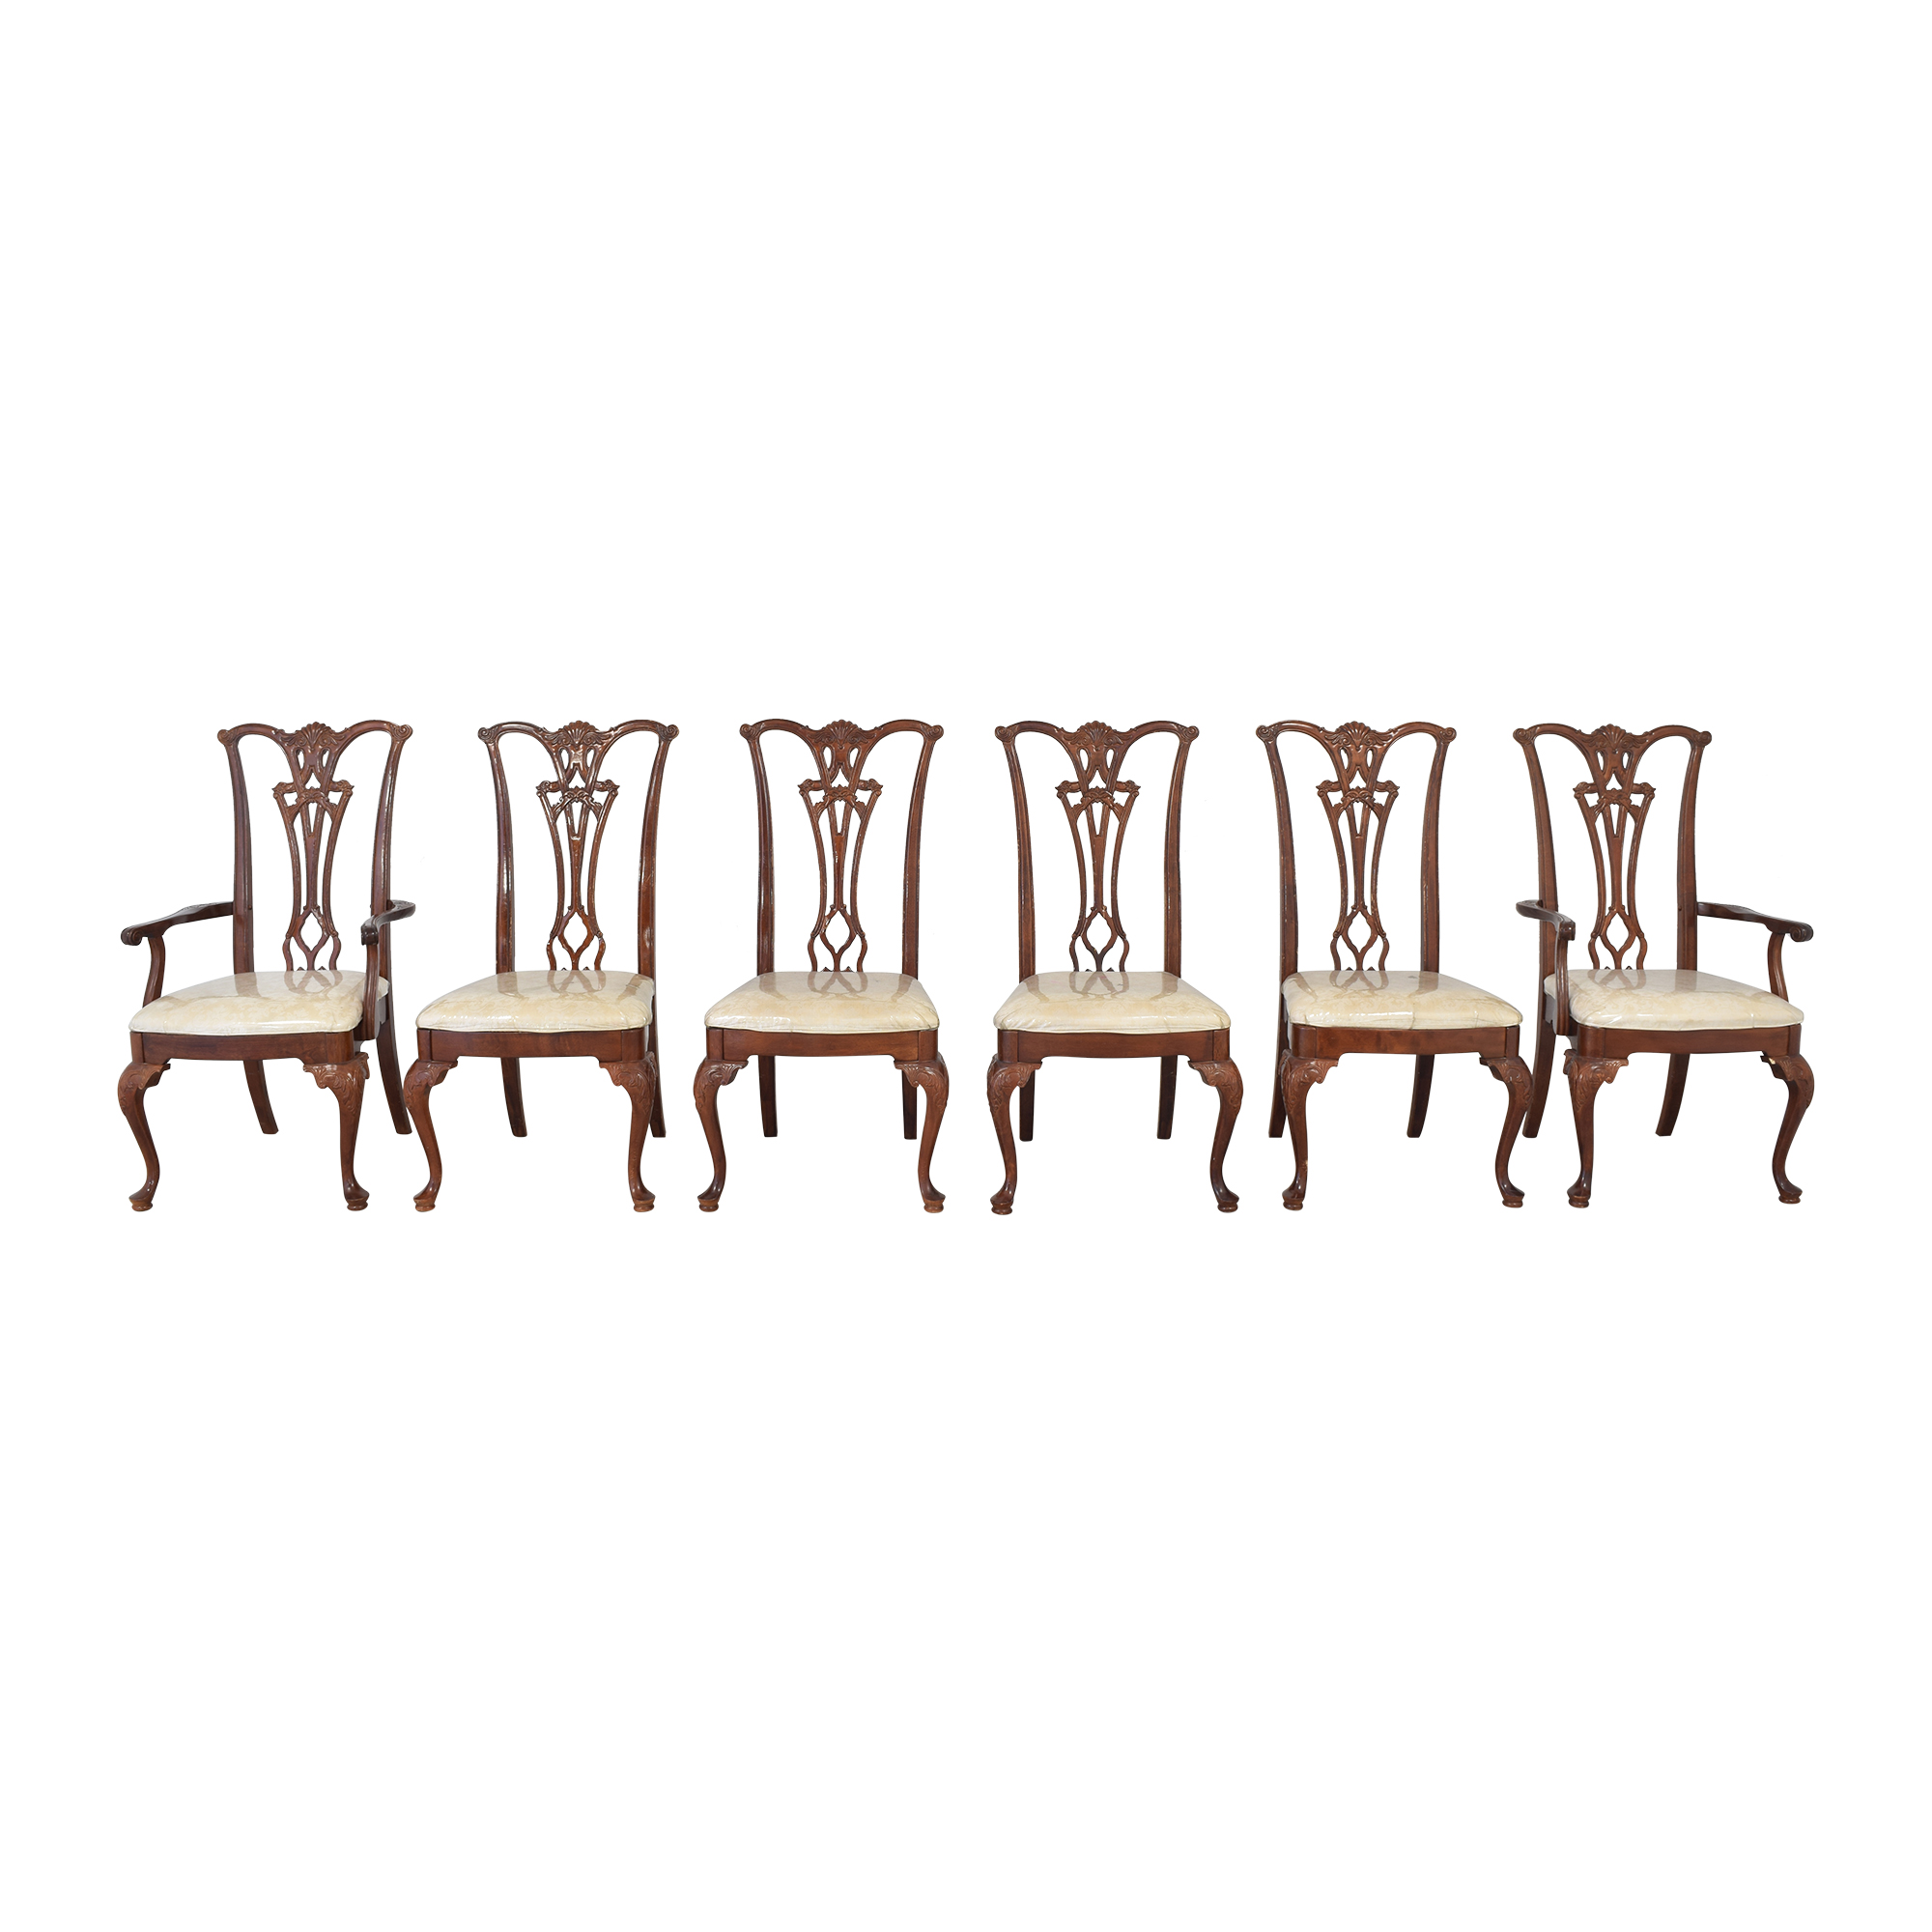 Universal Furniture Universal Furniture Queen Anne Style Dining Chairs ma